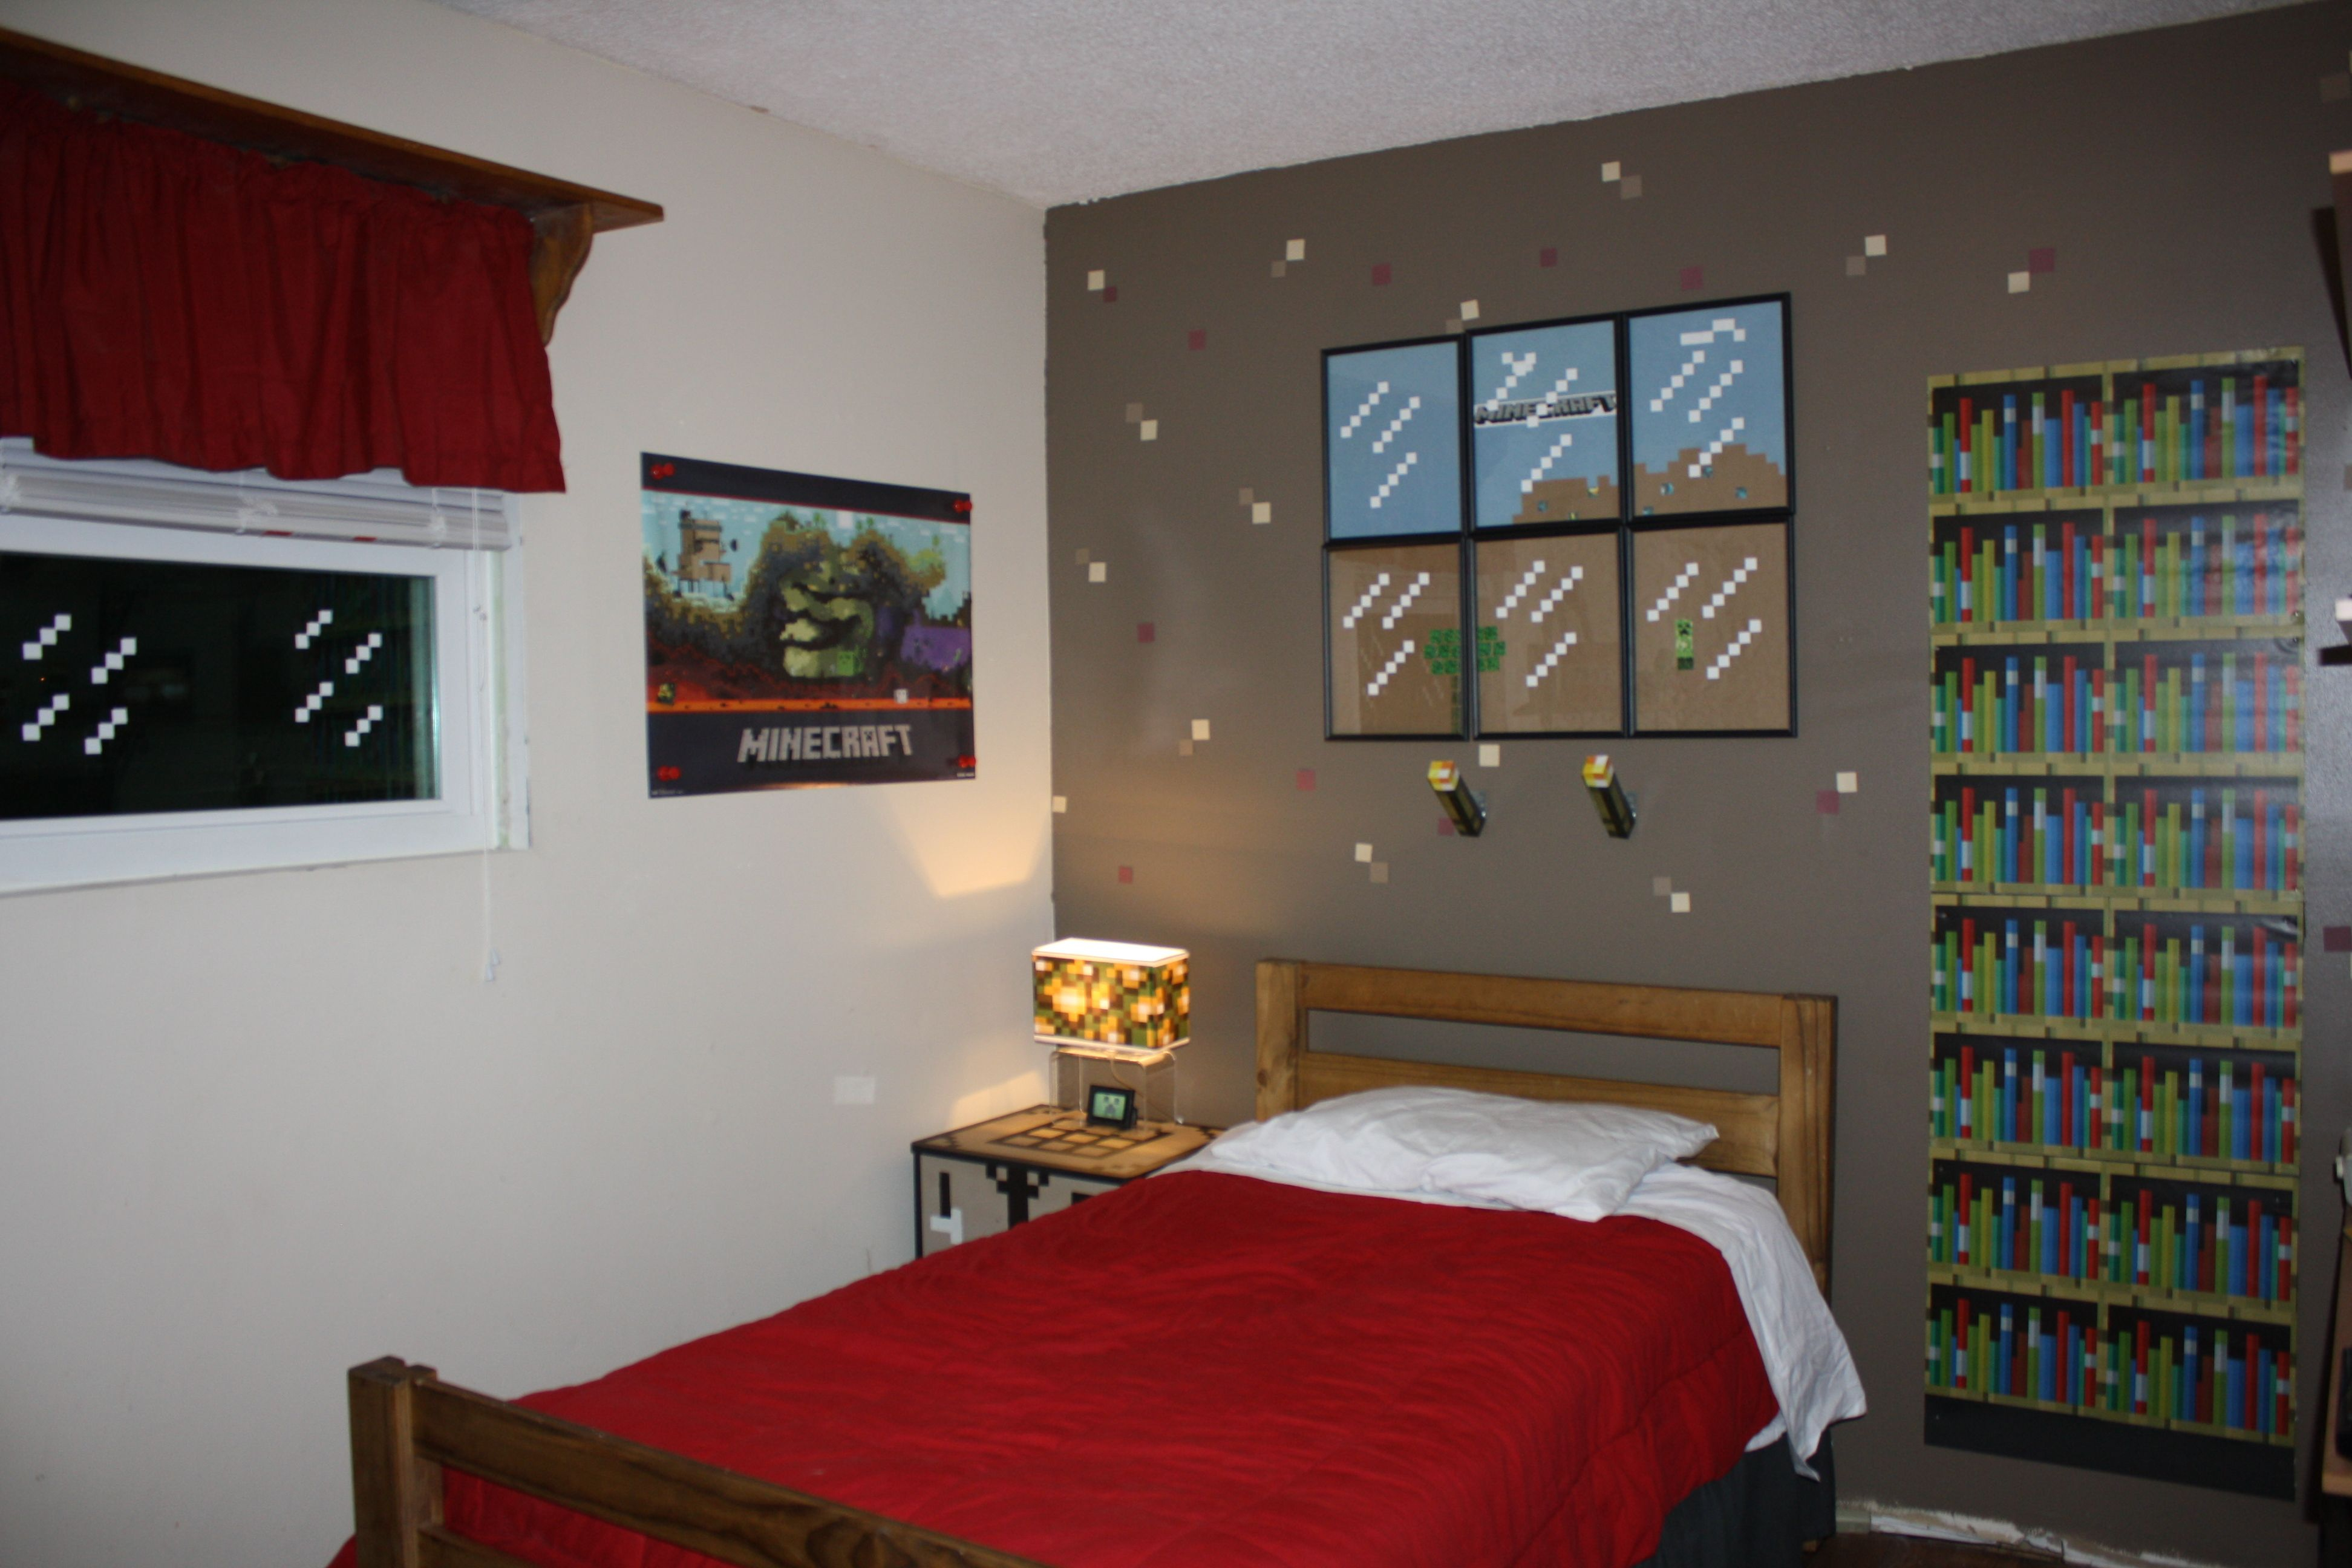 The Most Awesome Minecraft Bedroom Makeover One Wall Painted Brown With Punched Out Paper Squares Stuc Minecraft Bedroom Decor Minecraft Bedroom Fancy Bedroom